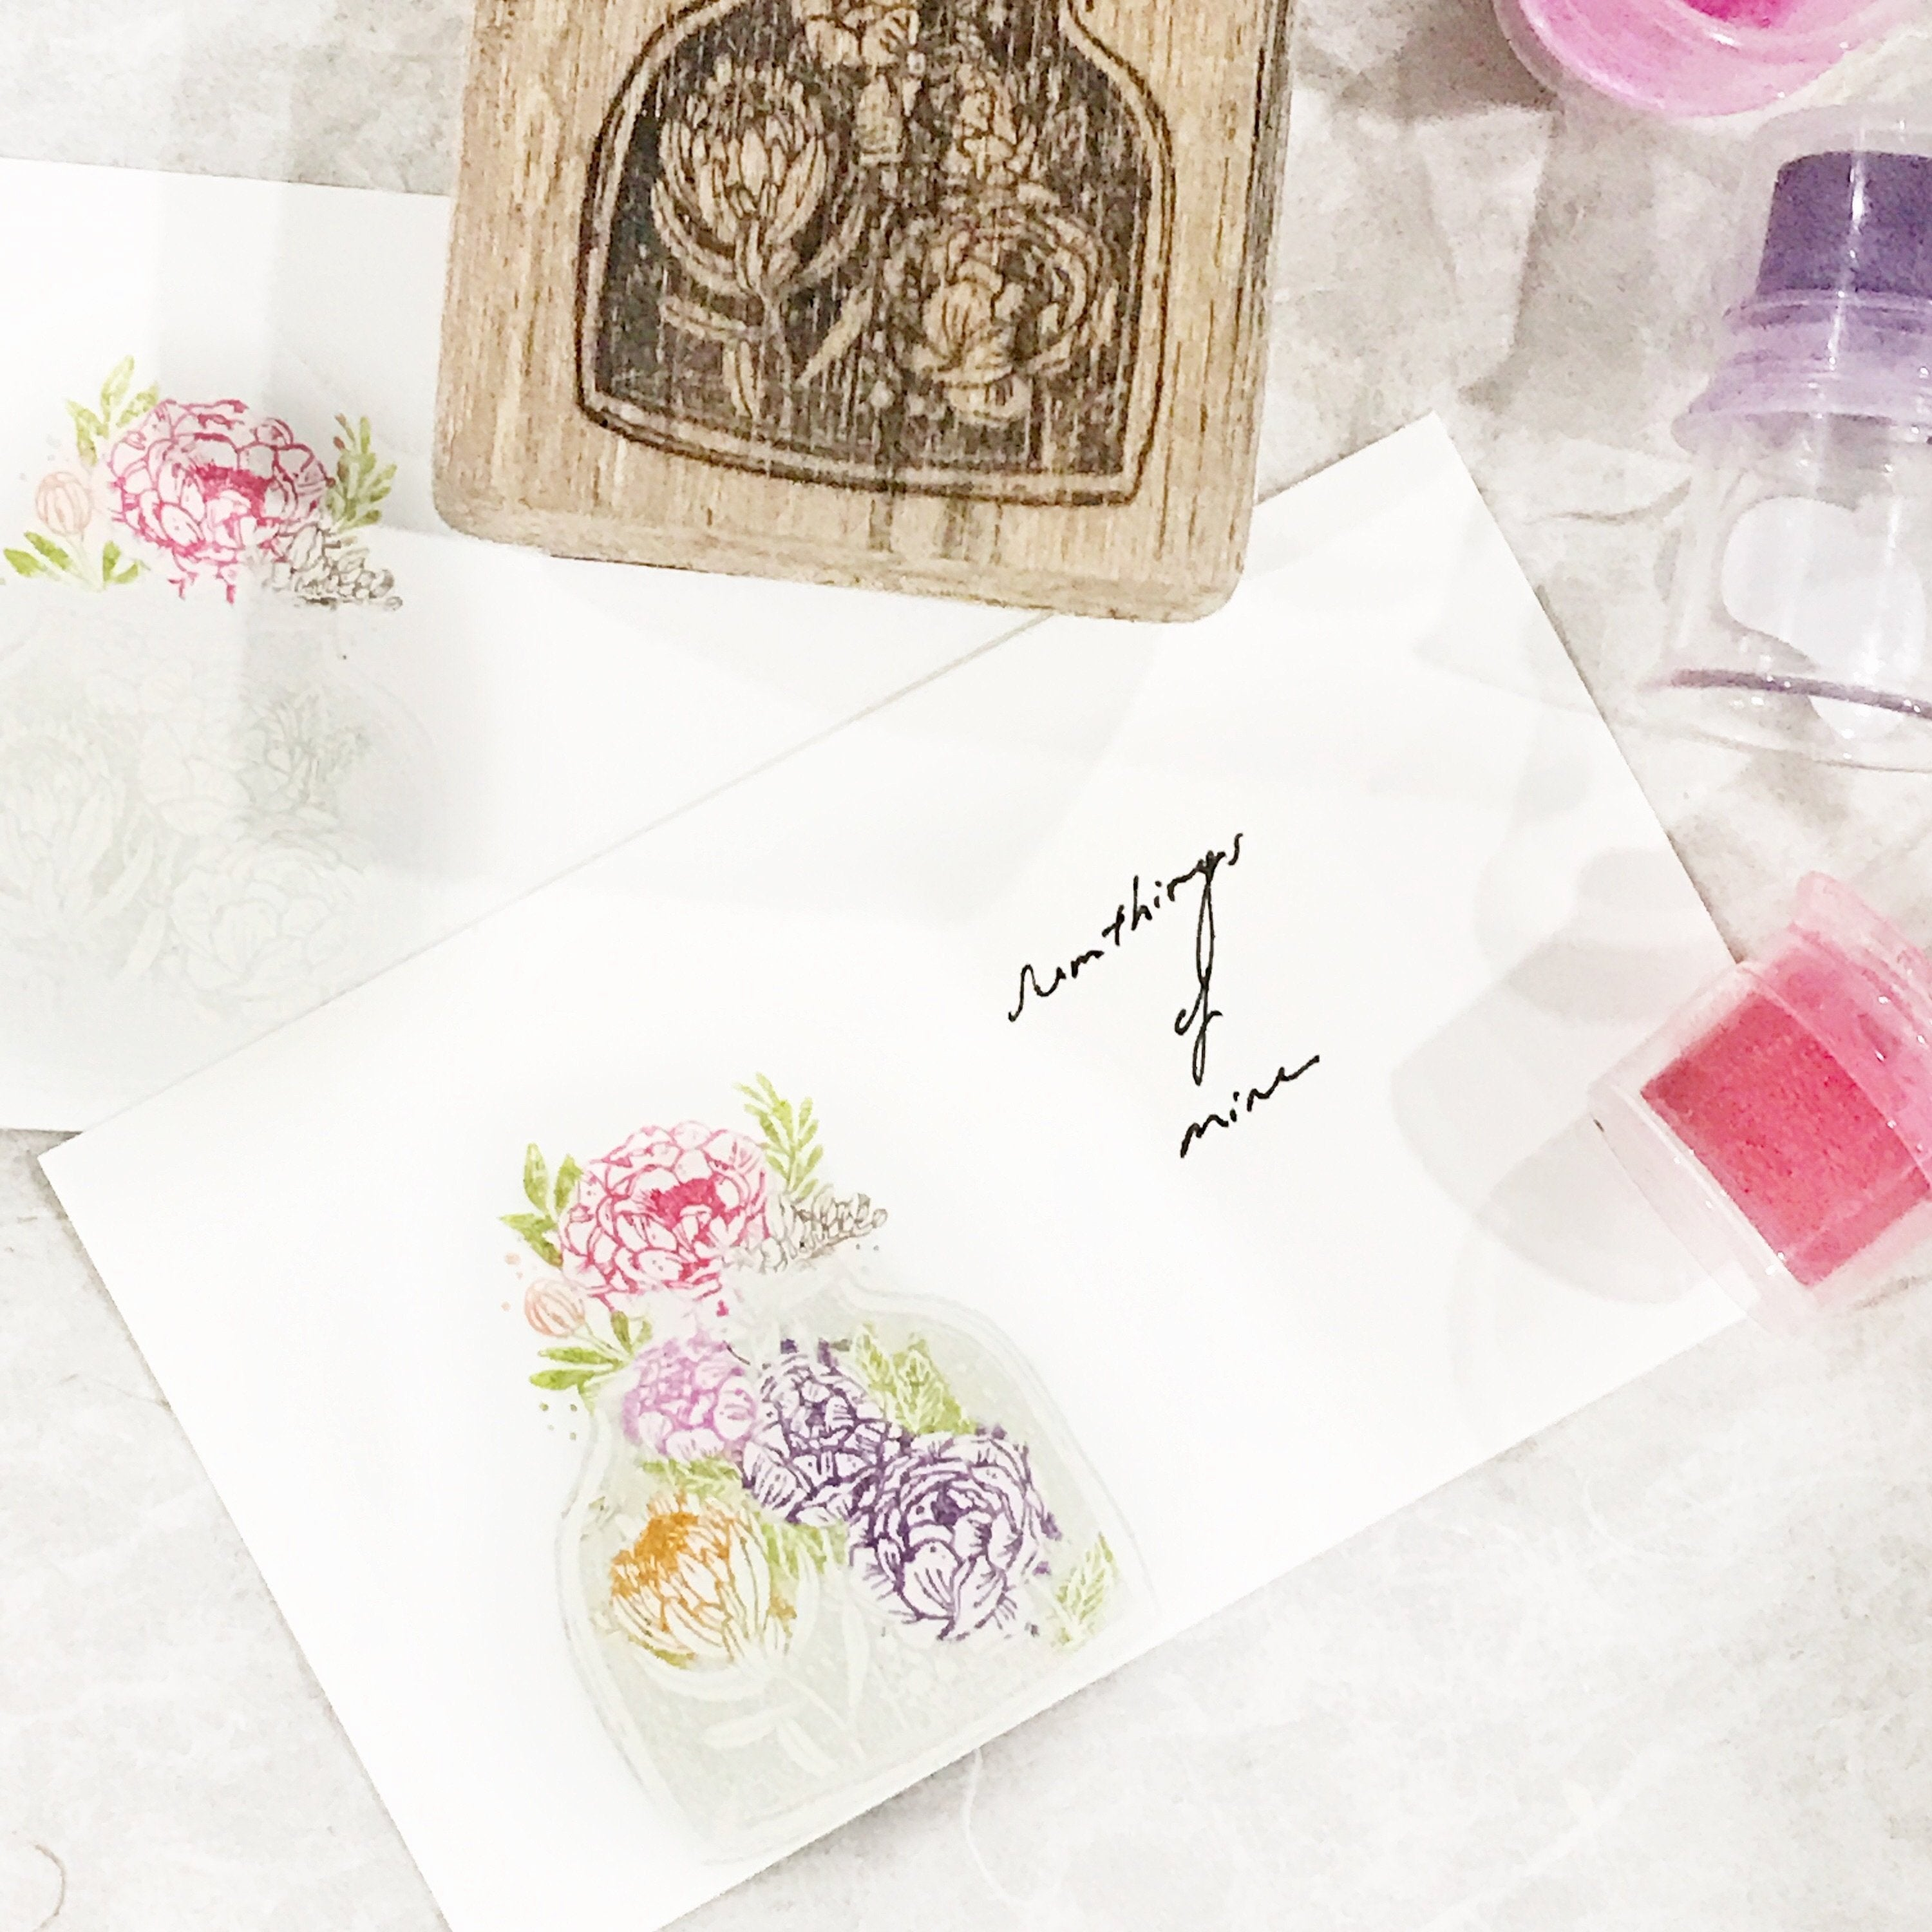 Black Milk Project Rubber Stamp - Bottled Dream Series